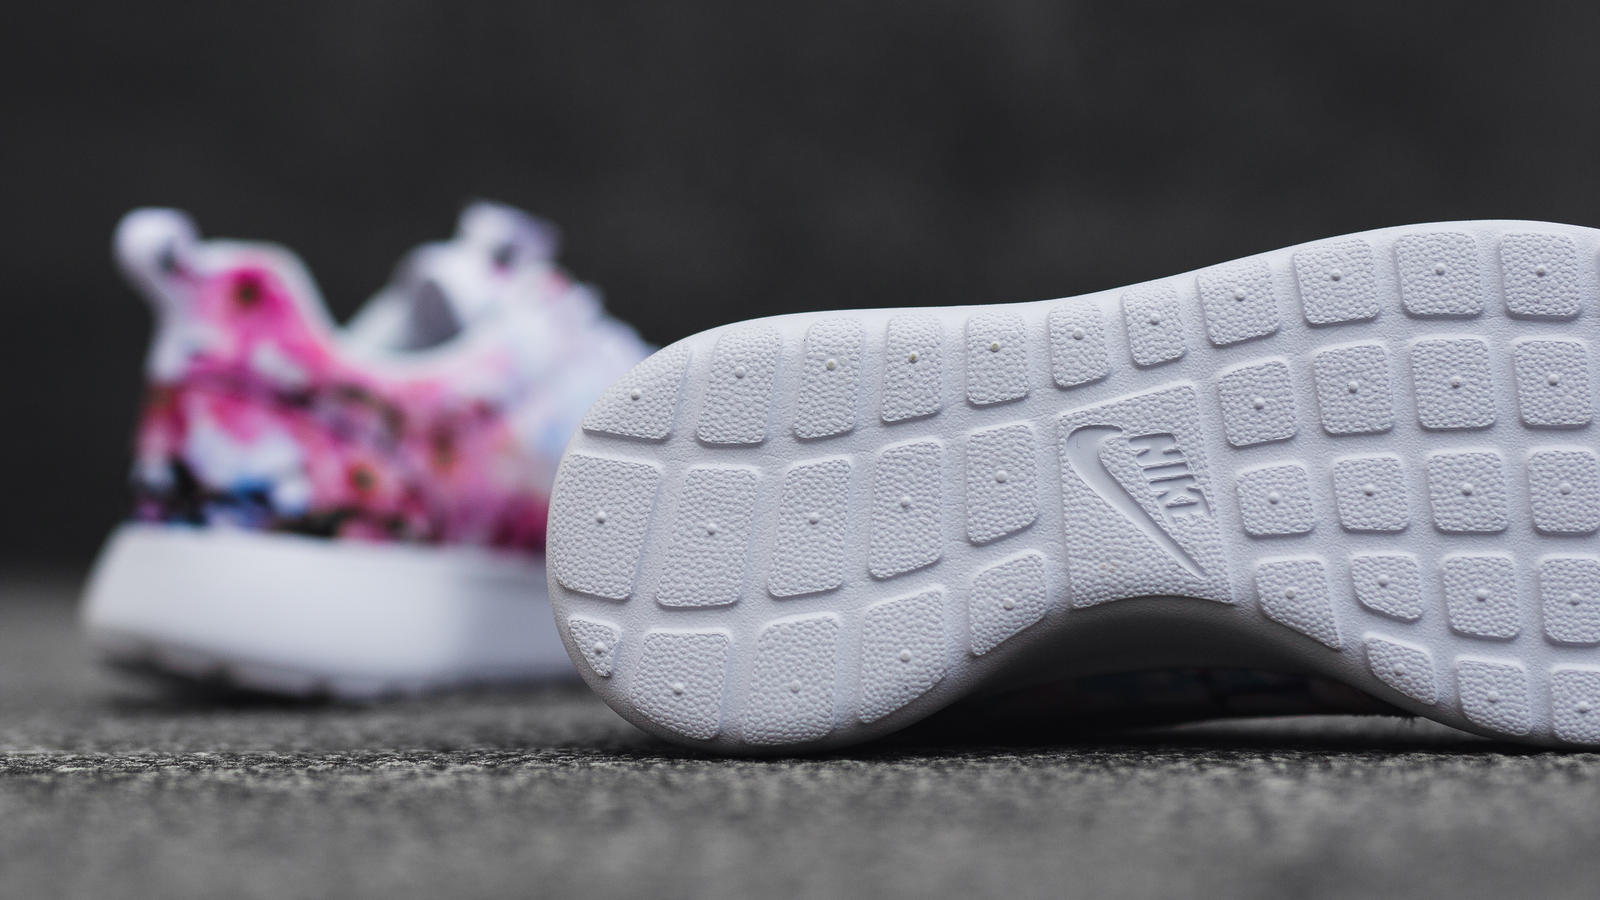 Nike roshe one cherry blossom 1 hd 1600